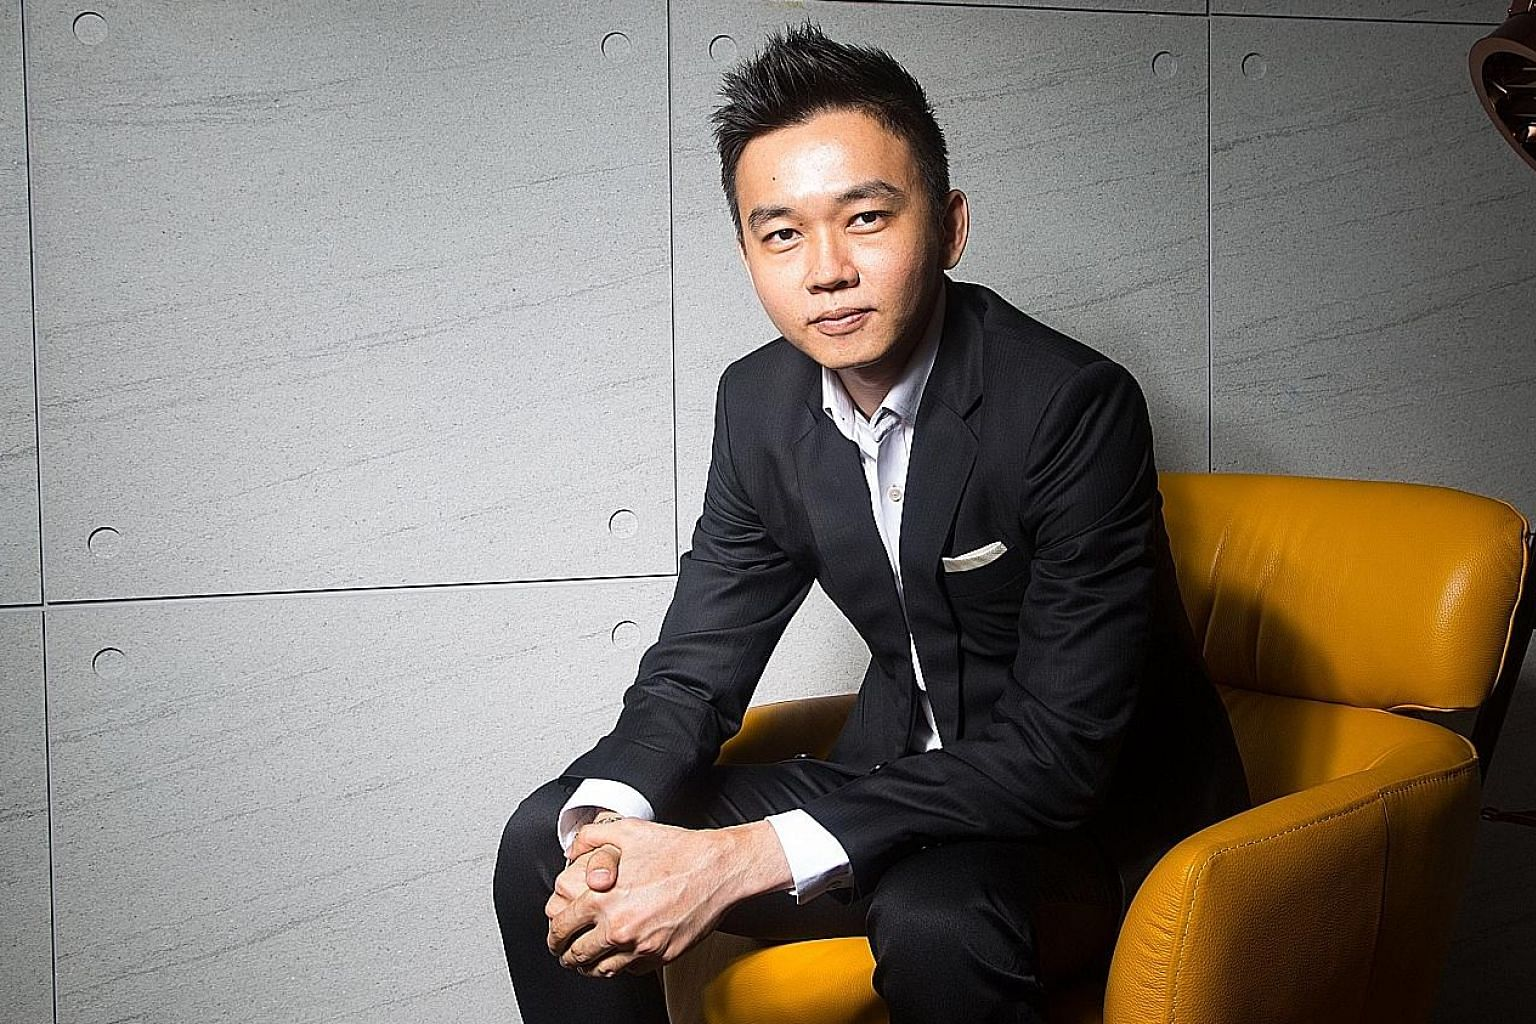 Mr Eddie Lee, group chief executive of crowdfunding platform SeedIn Technology, says it is important for investors to research the background of crowdfunding platforms, start small and diversify the investment.